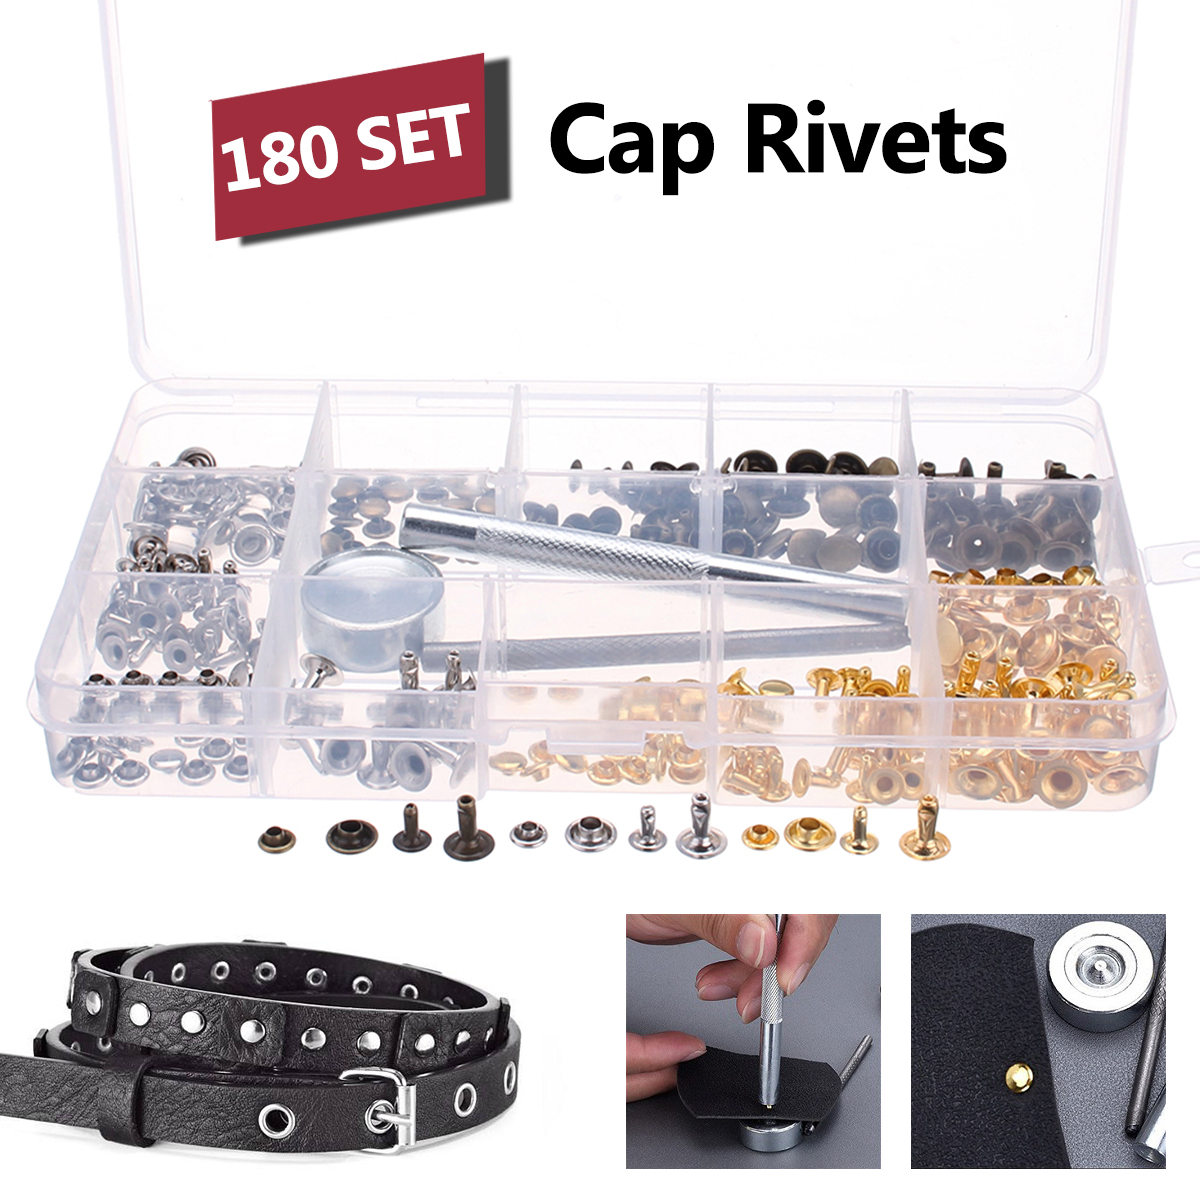 180pcs Silver Gold Metal Single Cap Rivet Set Tubular Studs Fixing Tool Kit For Leather Belts DIY Crafts Repairing Tool Sets